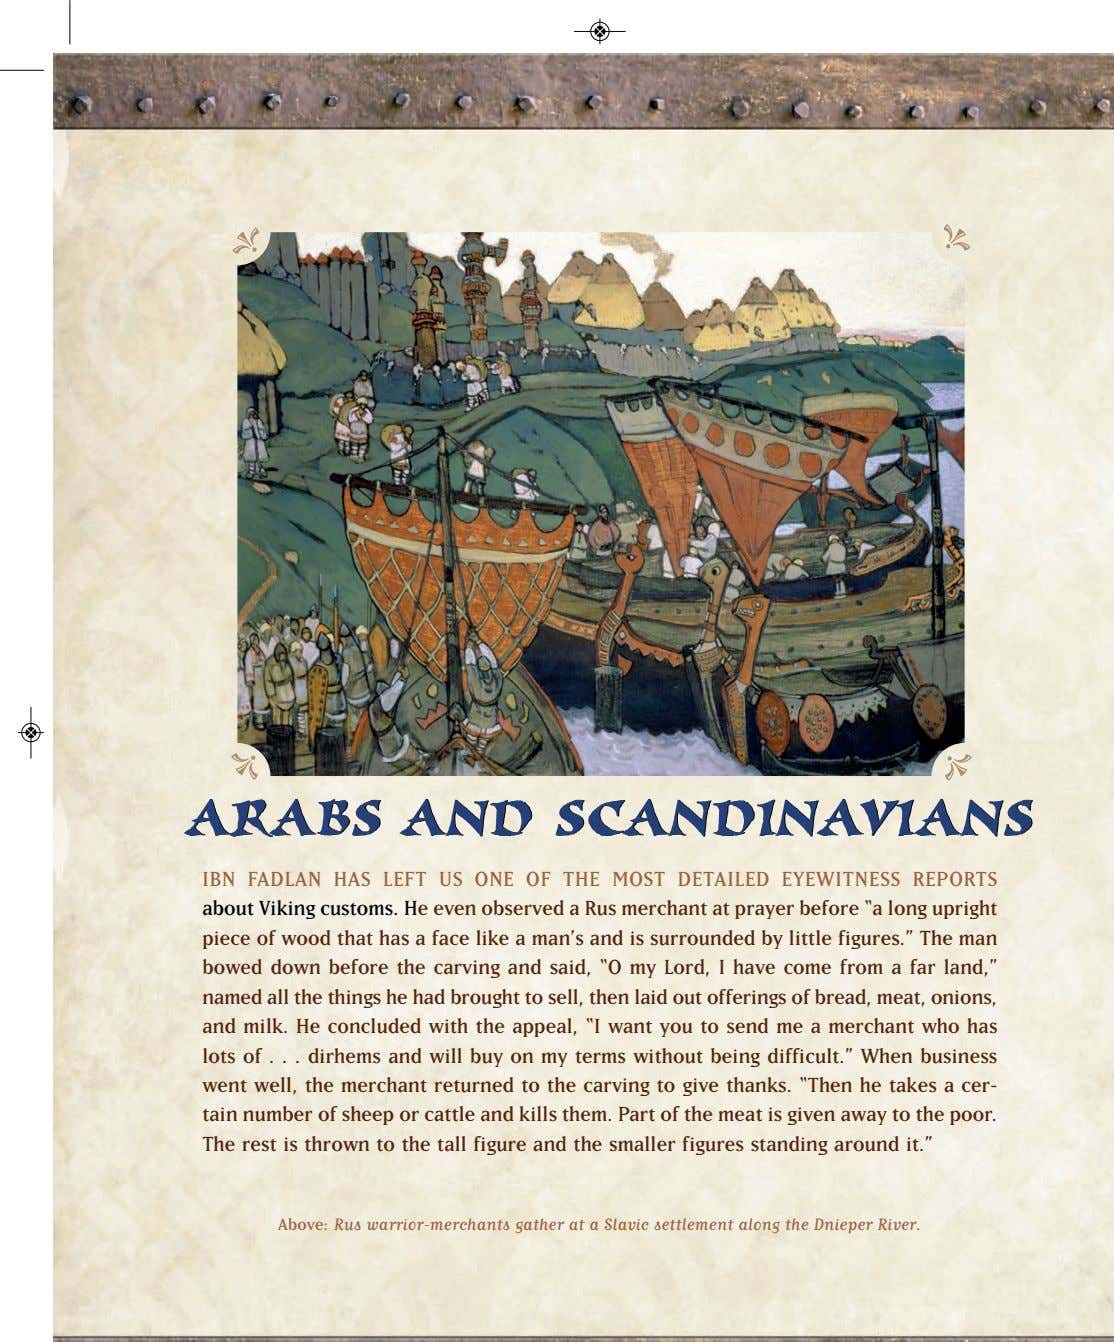 \ ARABSARABS ANDAND SCANDINAVIANSSCANDINAVIANS IBN FADLAN HAS LEFT US ONE OF THE MOST DETAILED EYEWITNESS